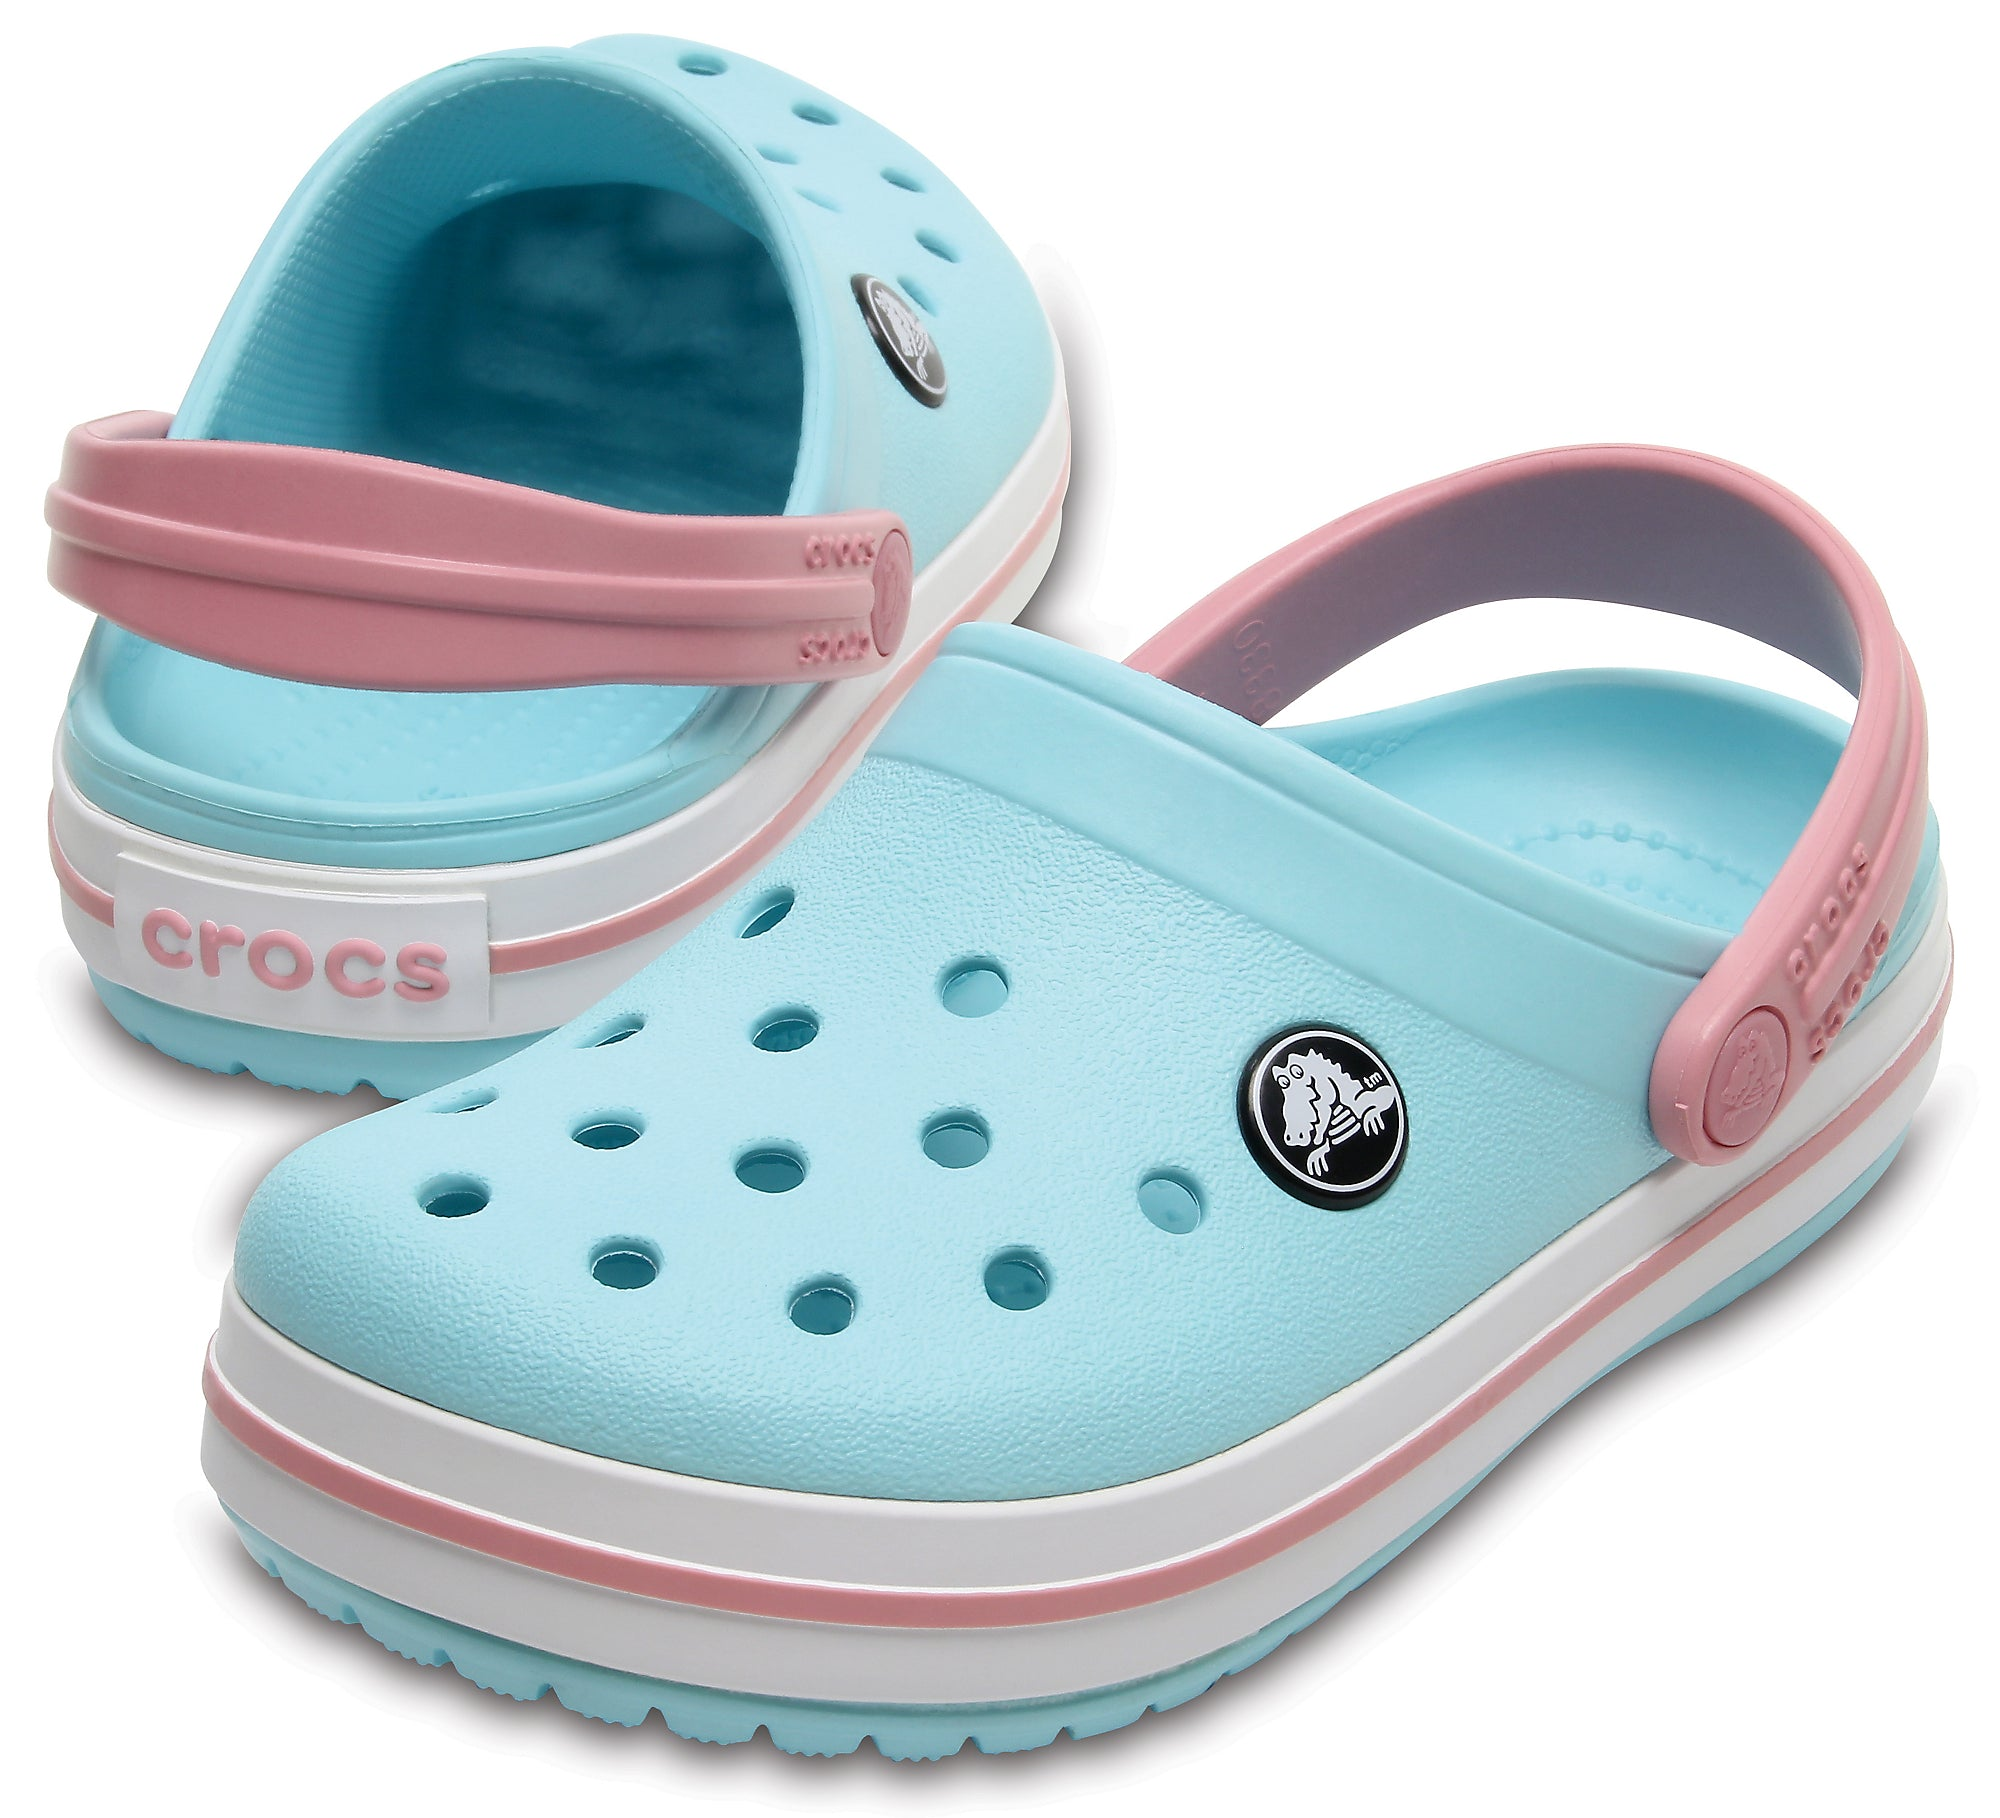 SALE - Crocs KIDS Crocband Clog - Ice Blue/White  - 204537-4S3